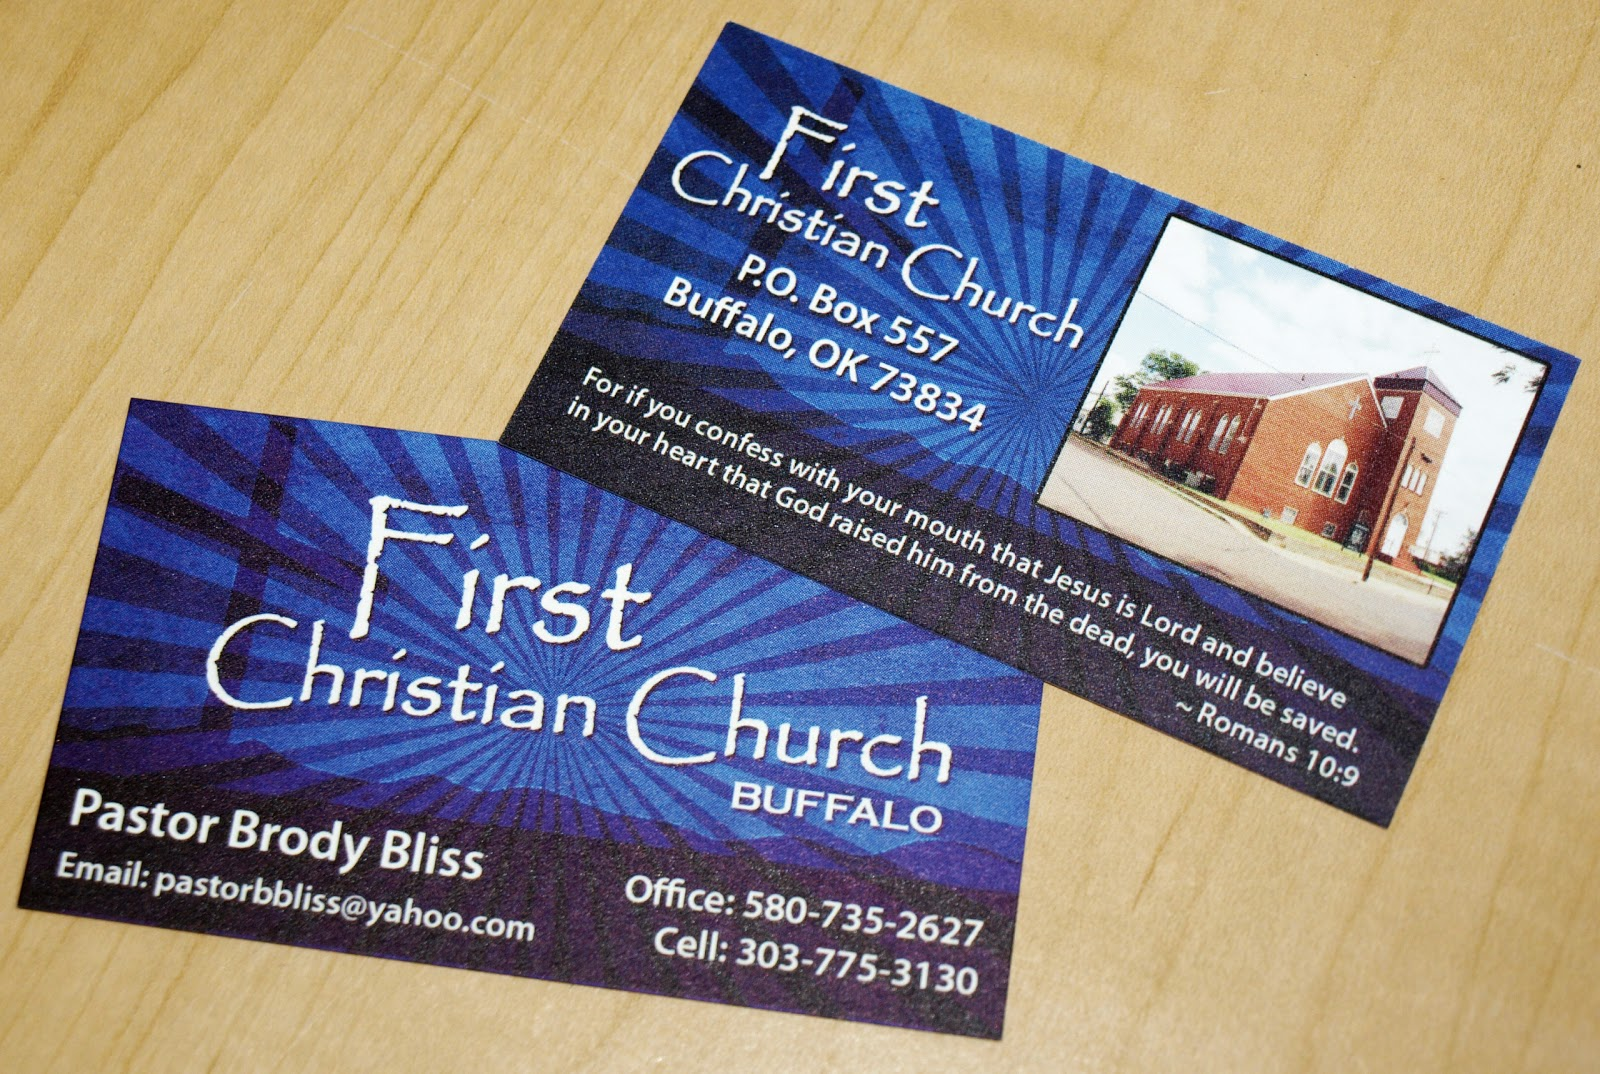 Leslie Earnest Studios: First Christian Church business cards